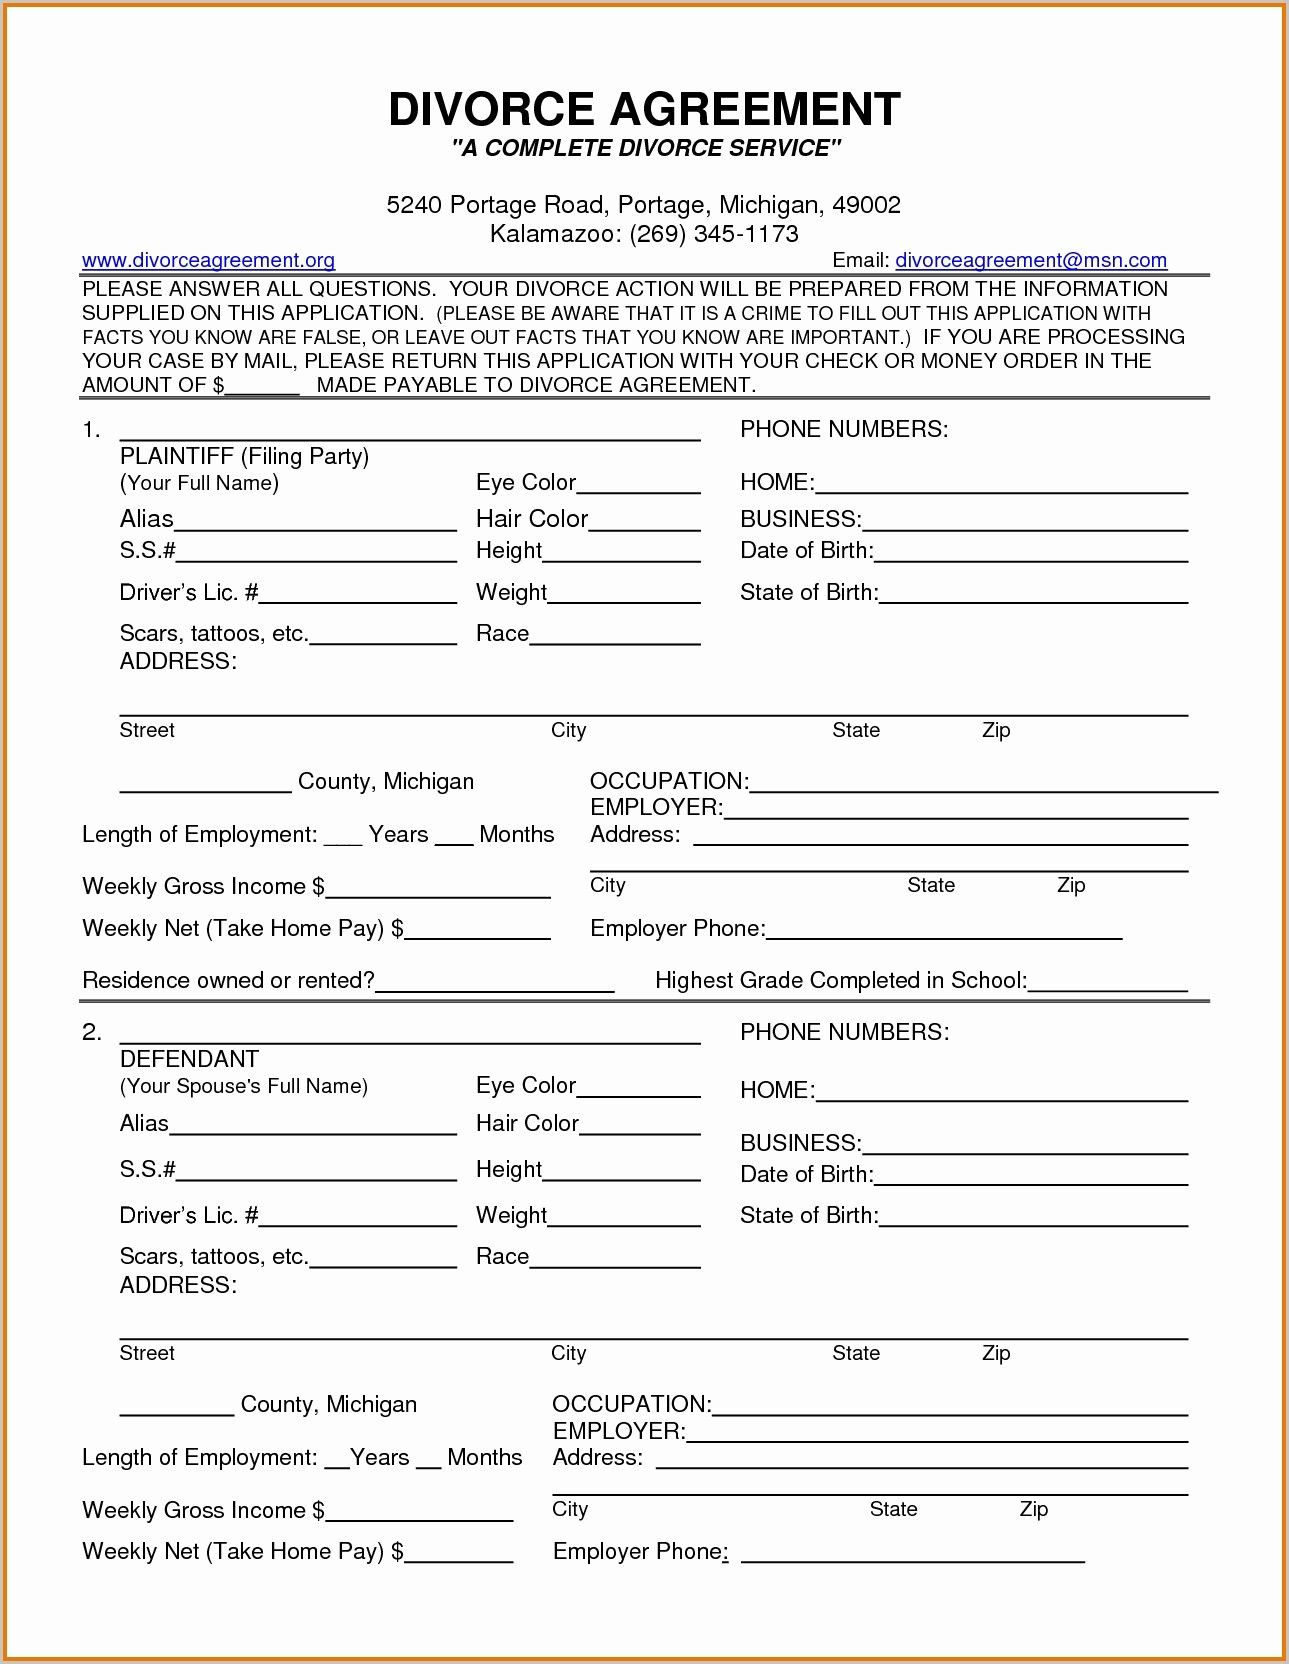 Florida Temporary Guardianship Forms New Awesome Free Printable Temporary Guardianship Form Divorce Forms Divorce Papers Fake Divorce Papers